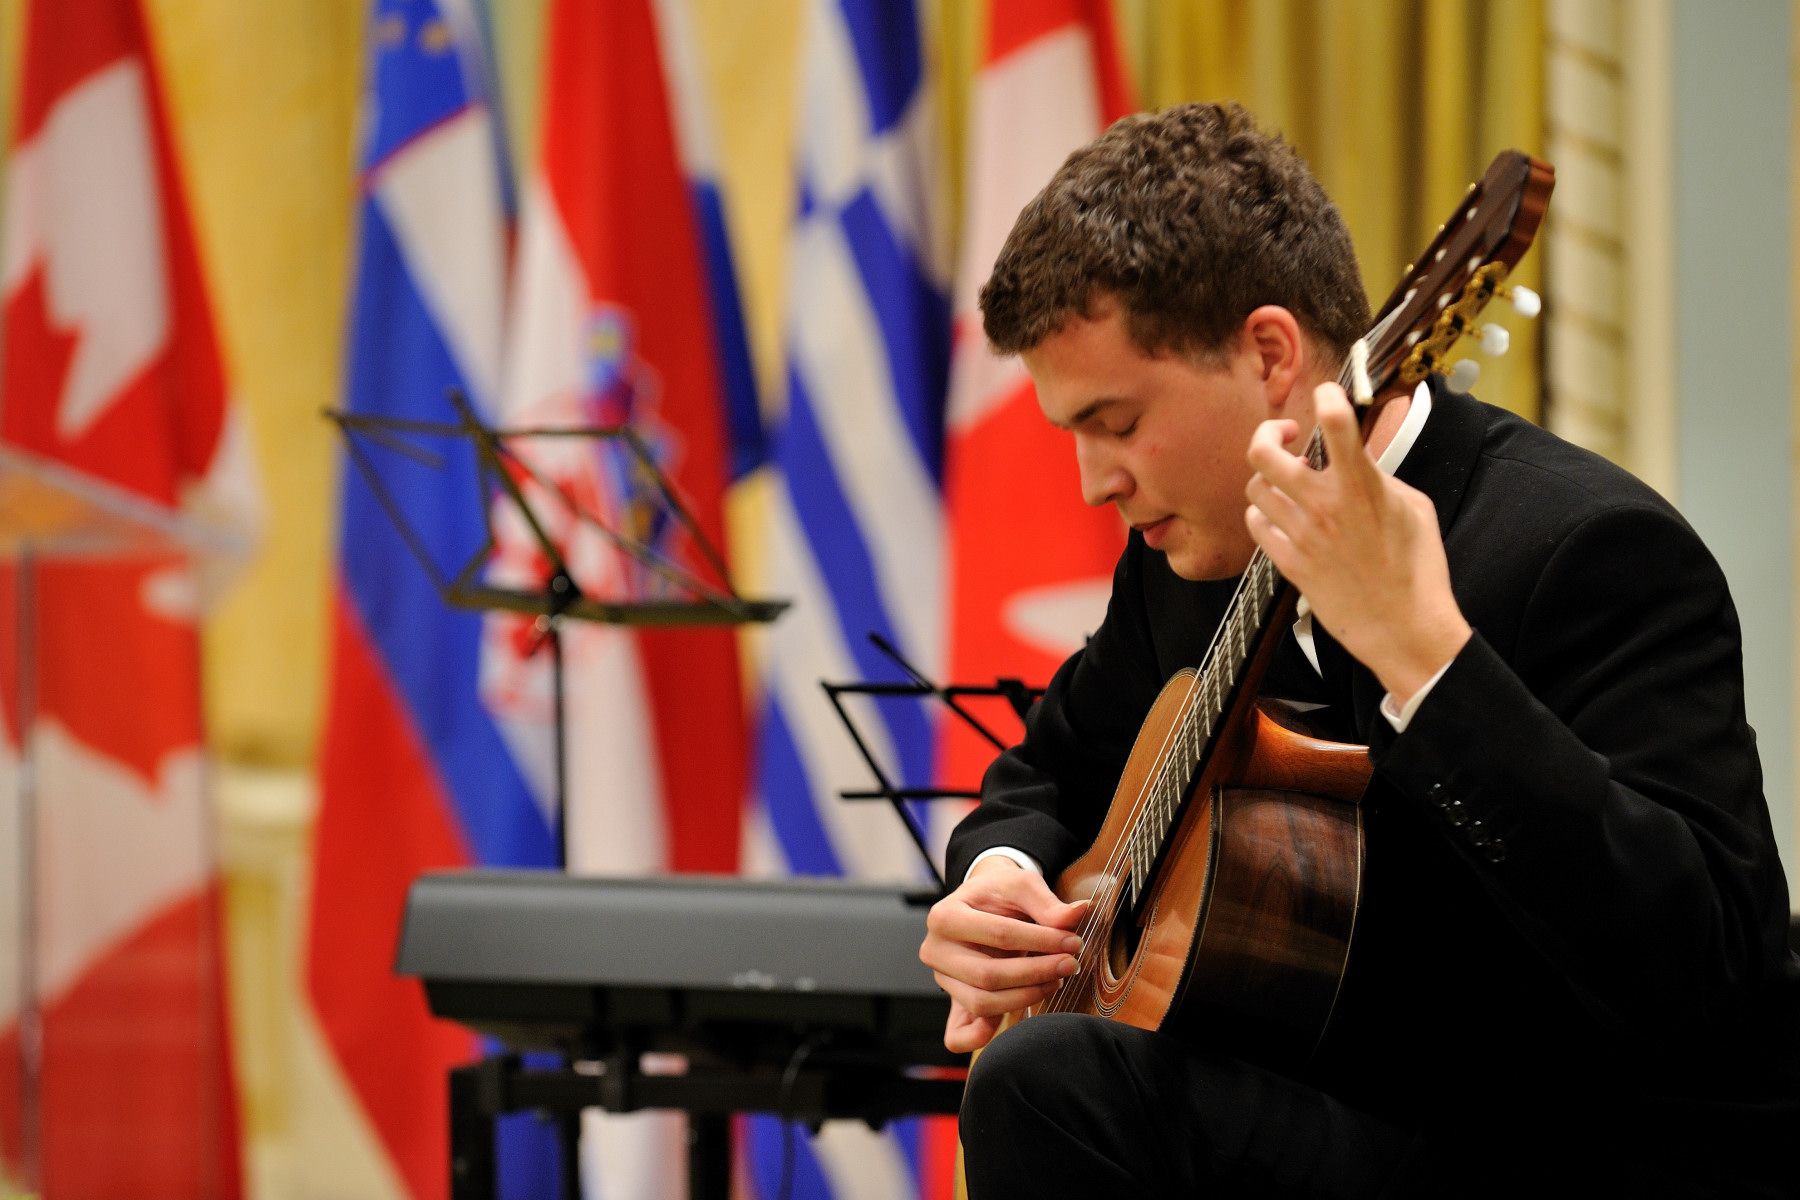 Croatian guitarist Srjan Bulat offered an oustanding performance. He was born on October 20, 1986, in Split, Croatia, and, at the age of 8, began to play the guitar.